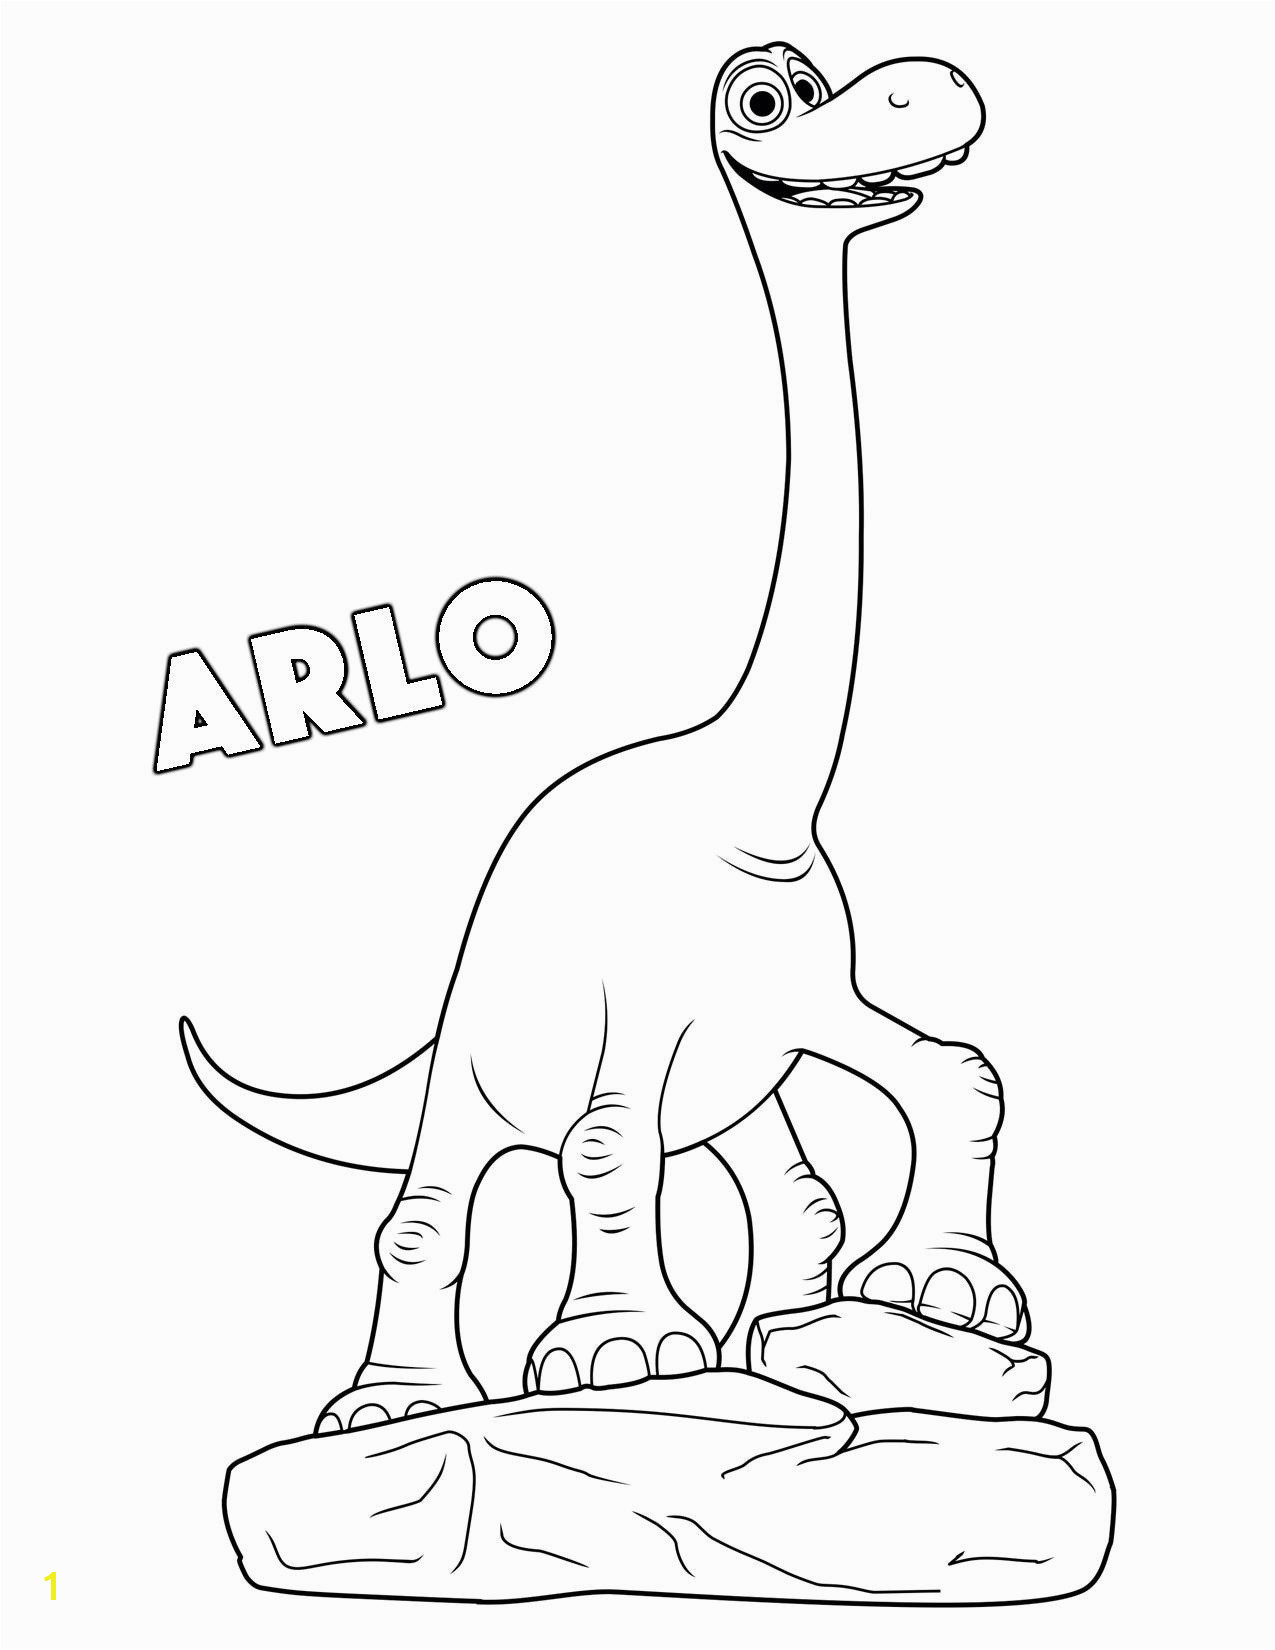 Free Animal Coloring Pages for Kids Coloring Page Airplane Free Printable Lovely Coloring Sheets Free